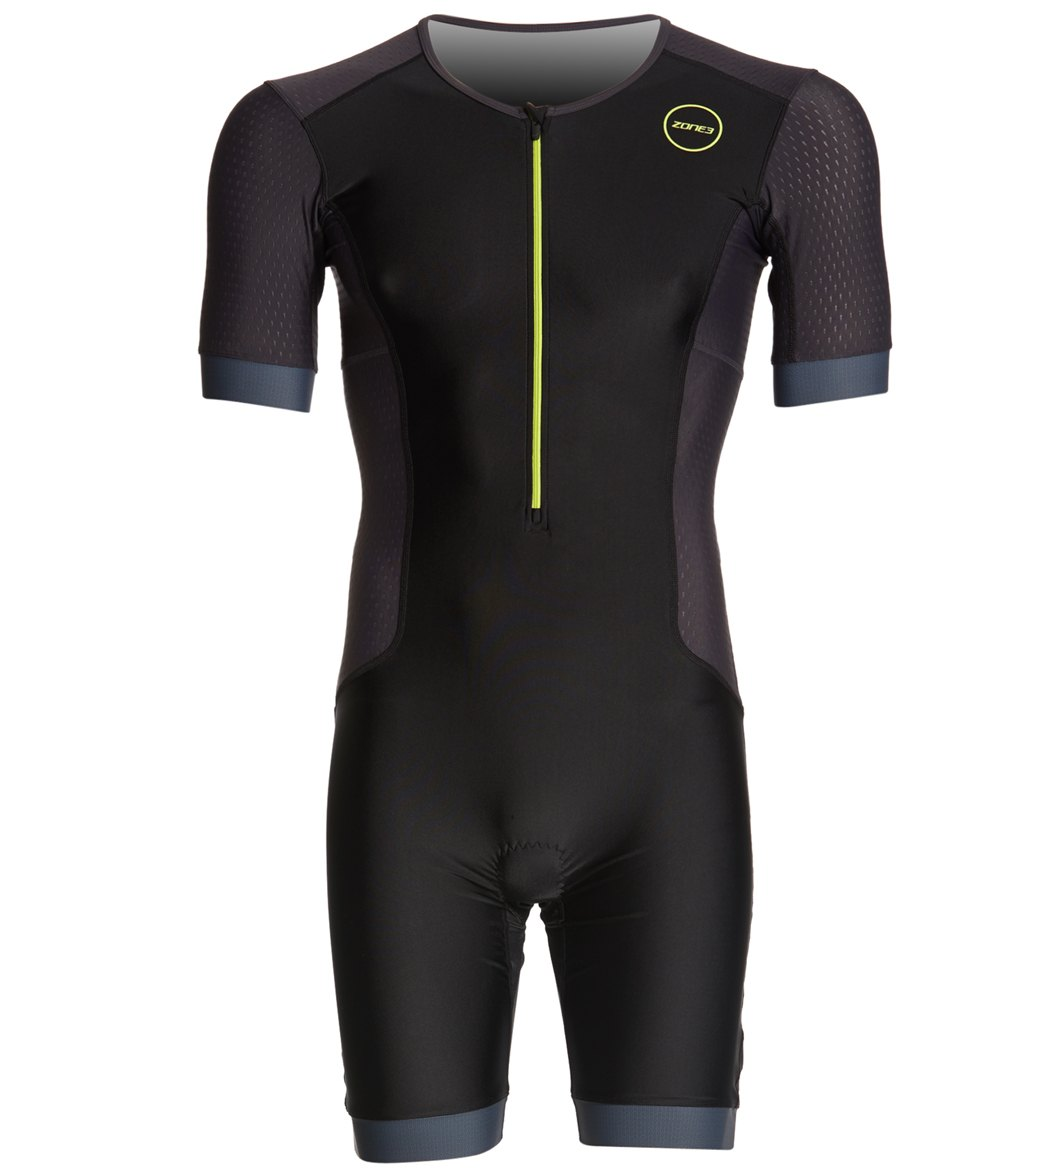 8ed6fa0b67 Zone 3 Men's Aquaflo Plus SS Trisuit at SwimOutlet.com - Free Shipping